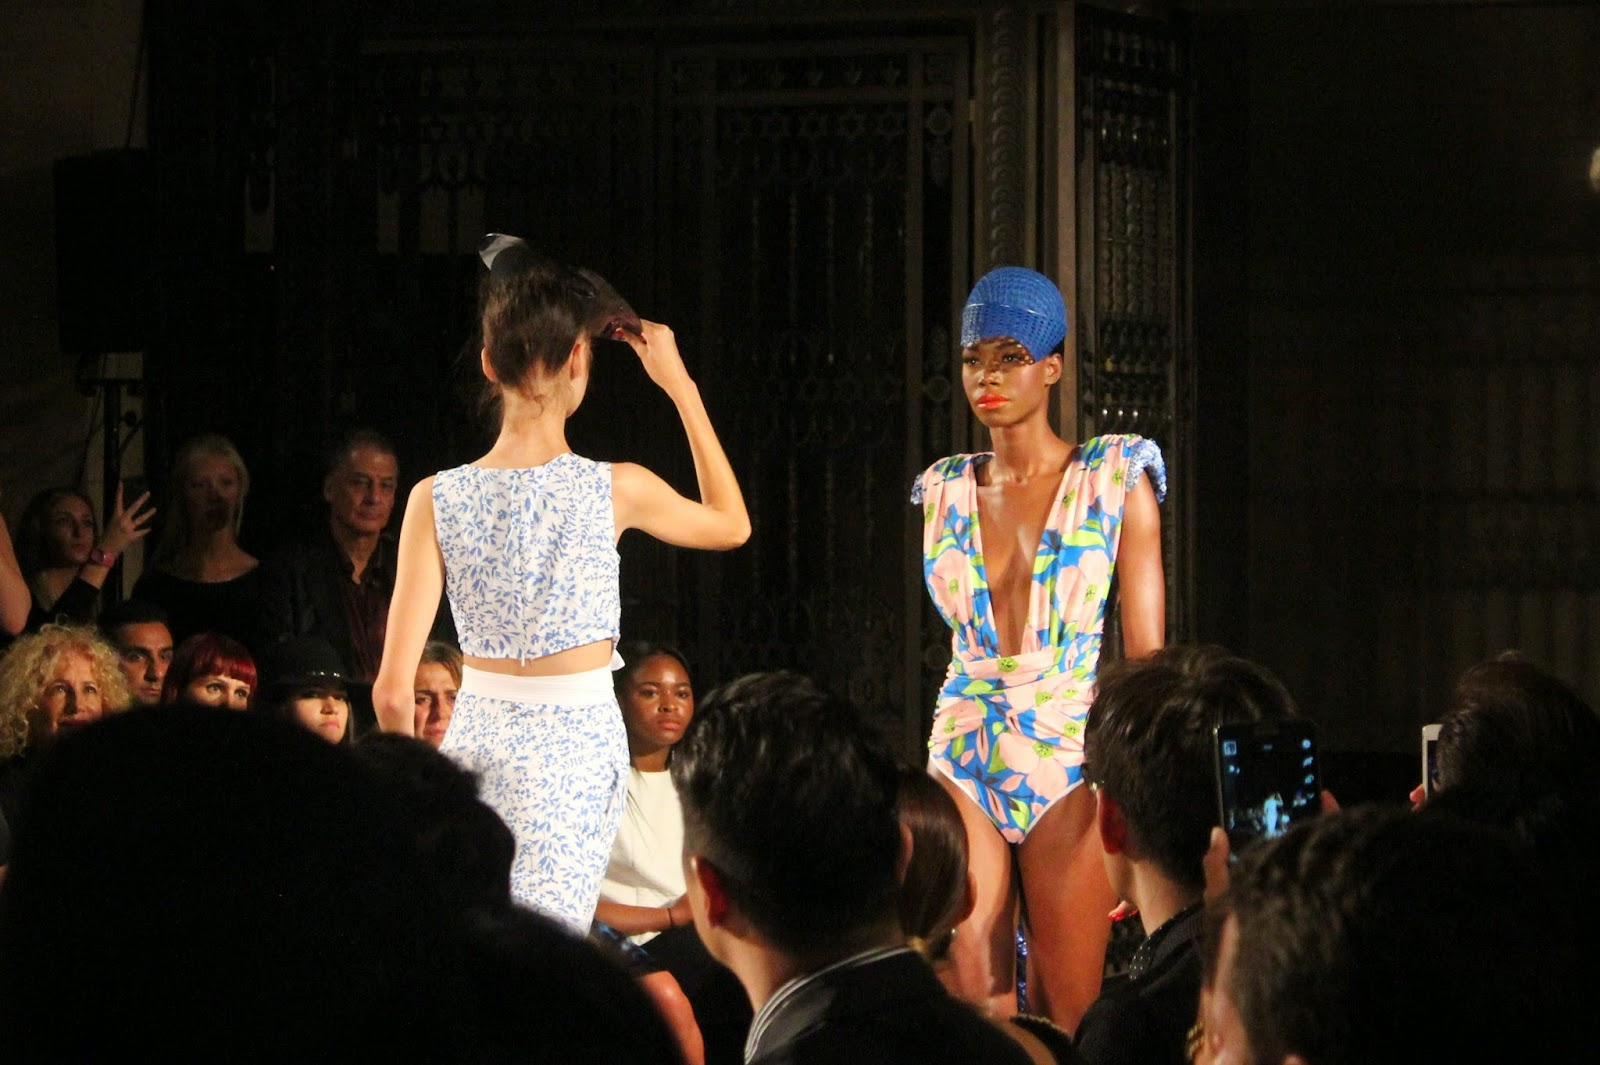 london-fashion-week-2014-lfw-spring-summer-2015-blogger-fashion-freemasons hall-fashion-scout-ashley-isham-catwalk-models-top-skirt-swimsuit